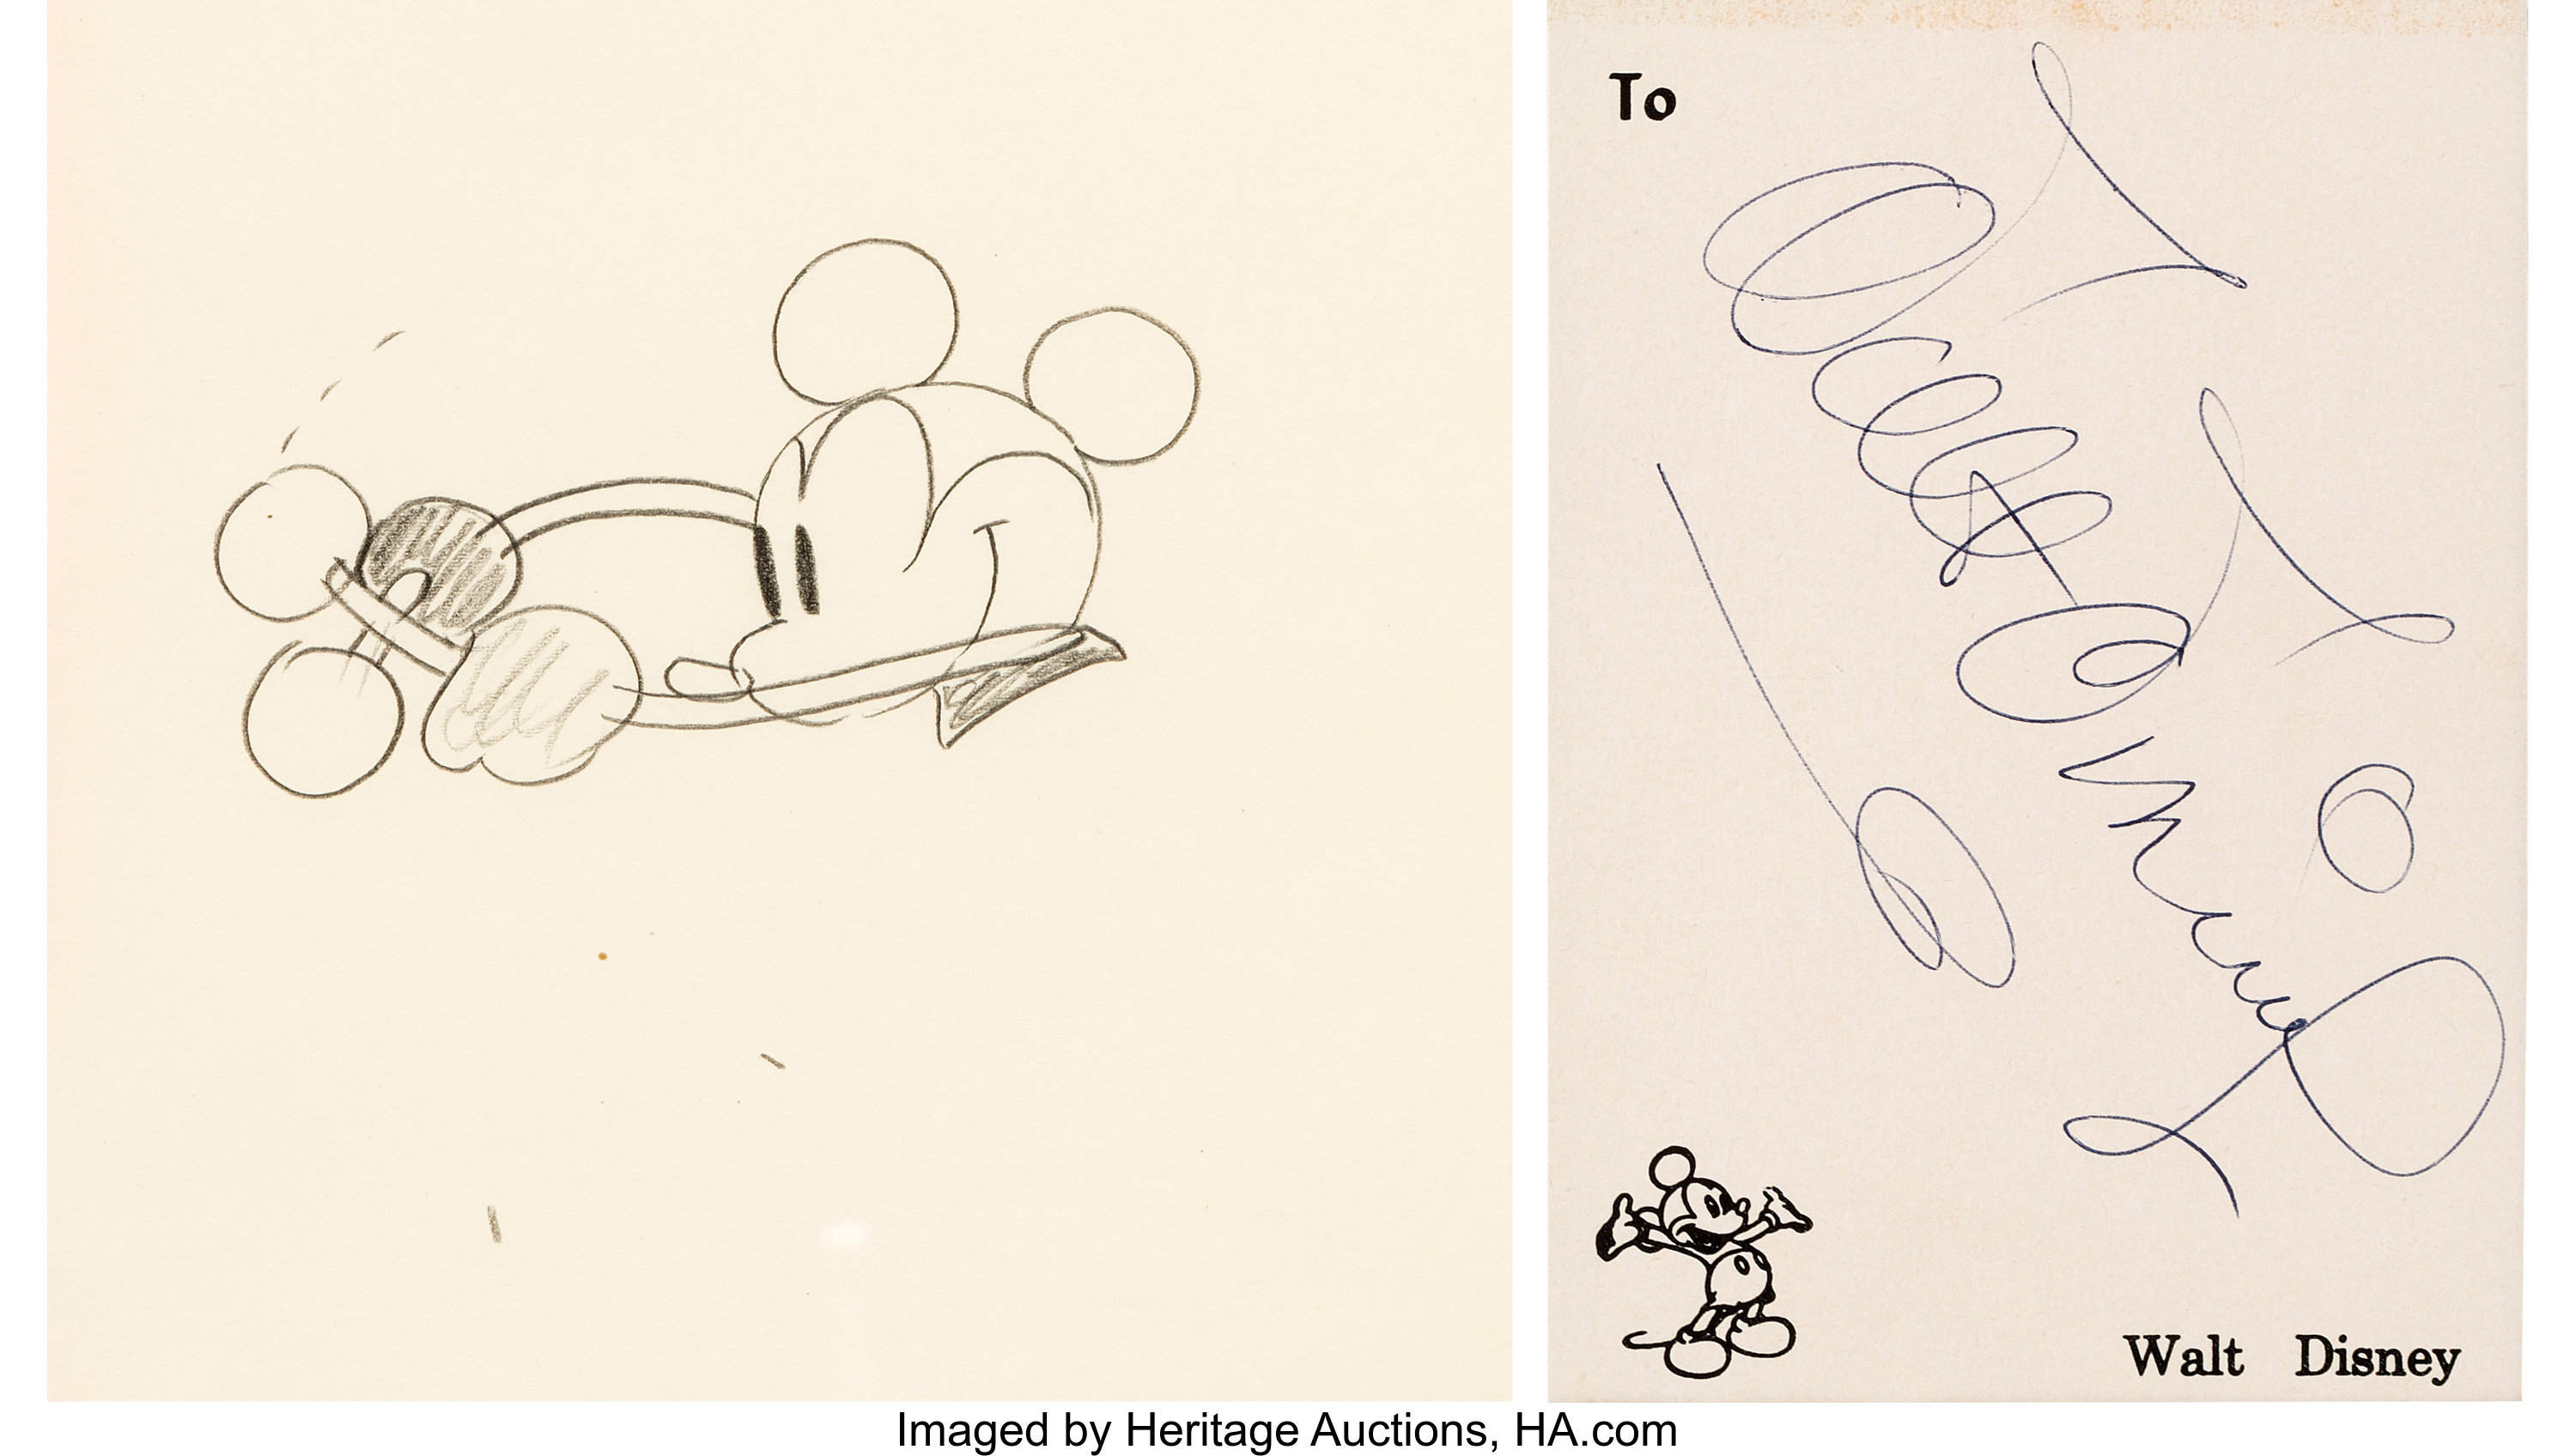 Large Collection of Vintage Disney Animation Art at Heritage